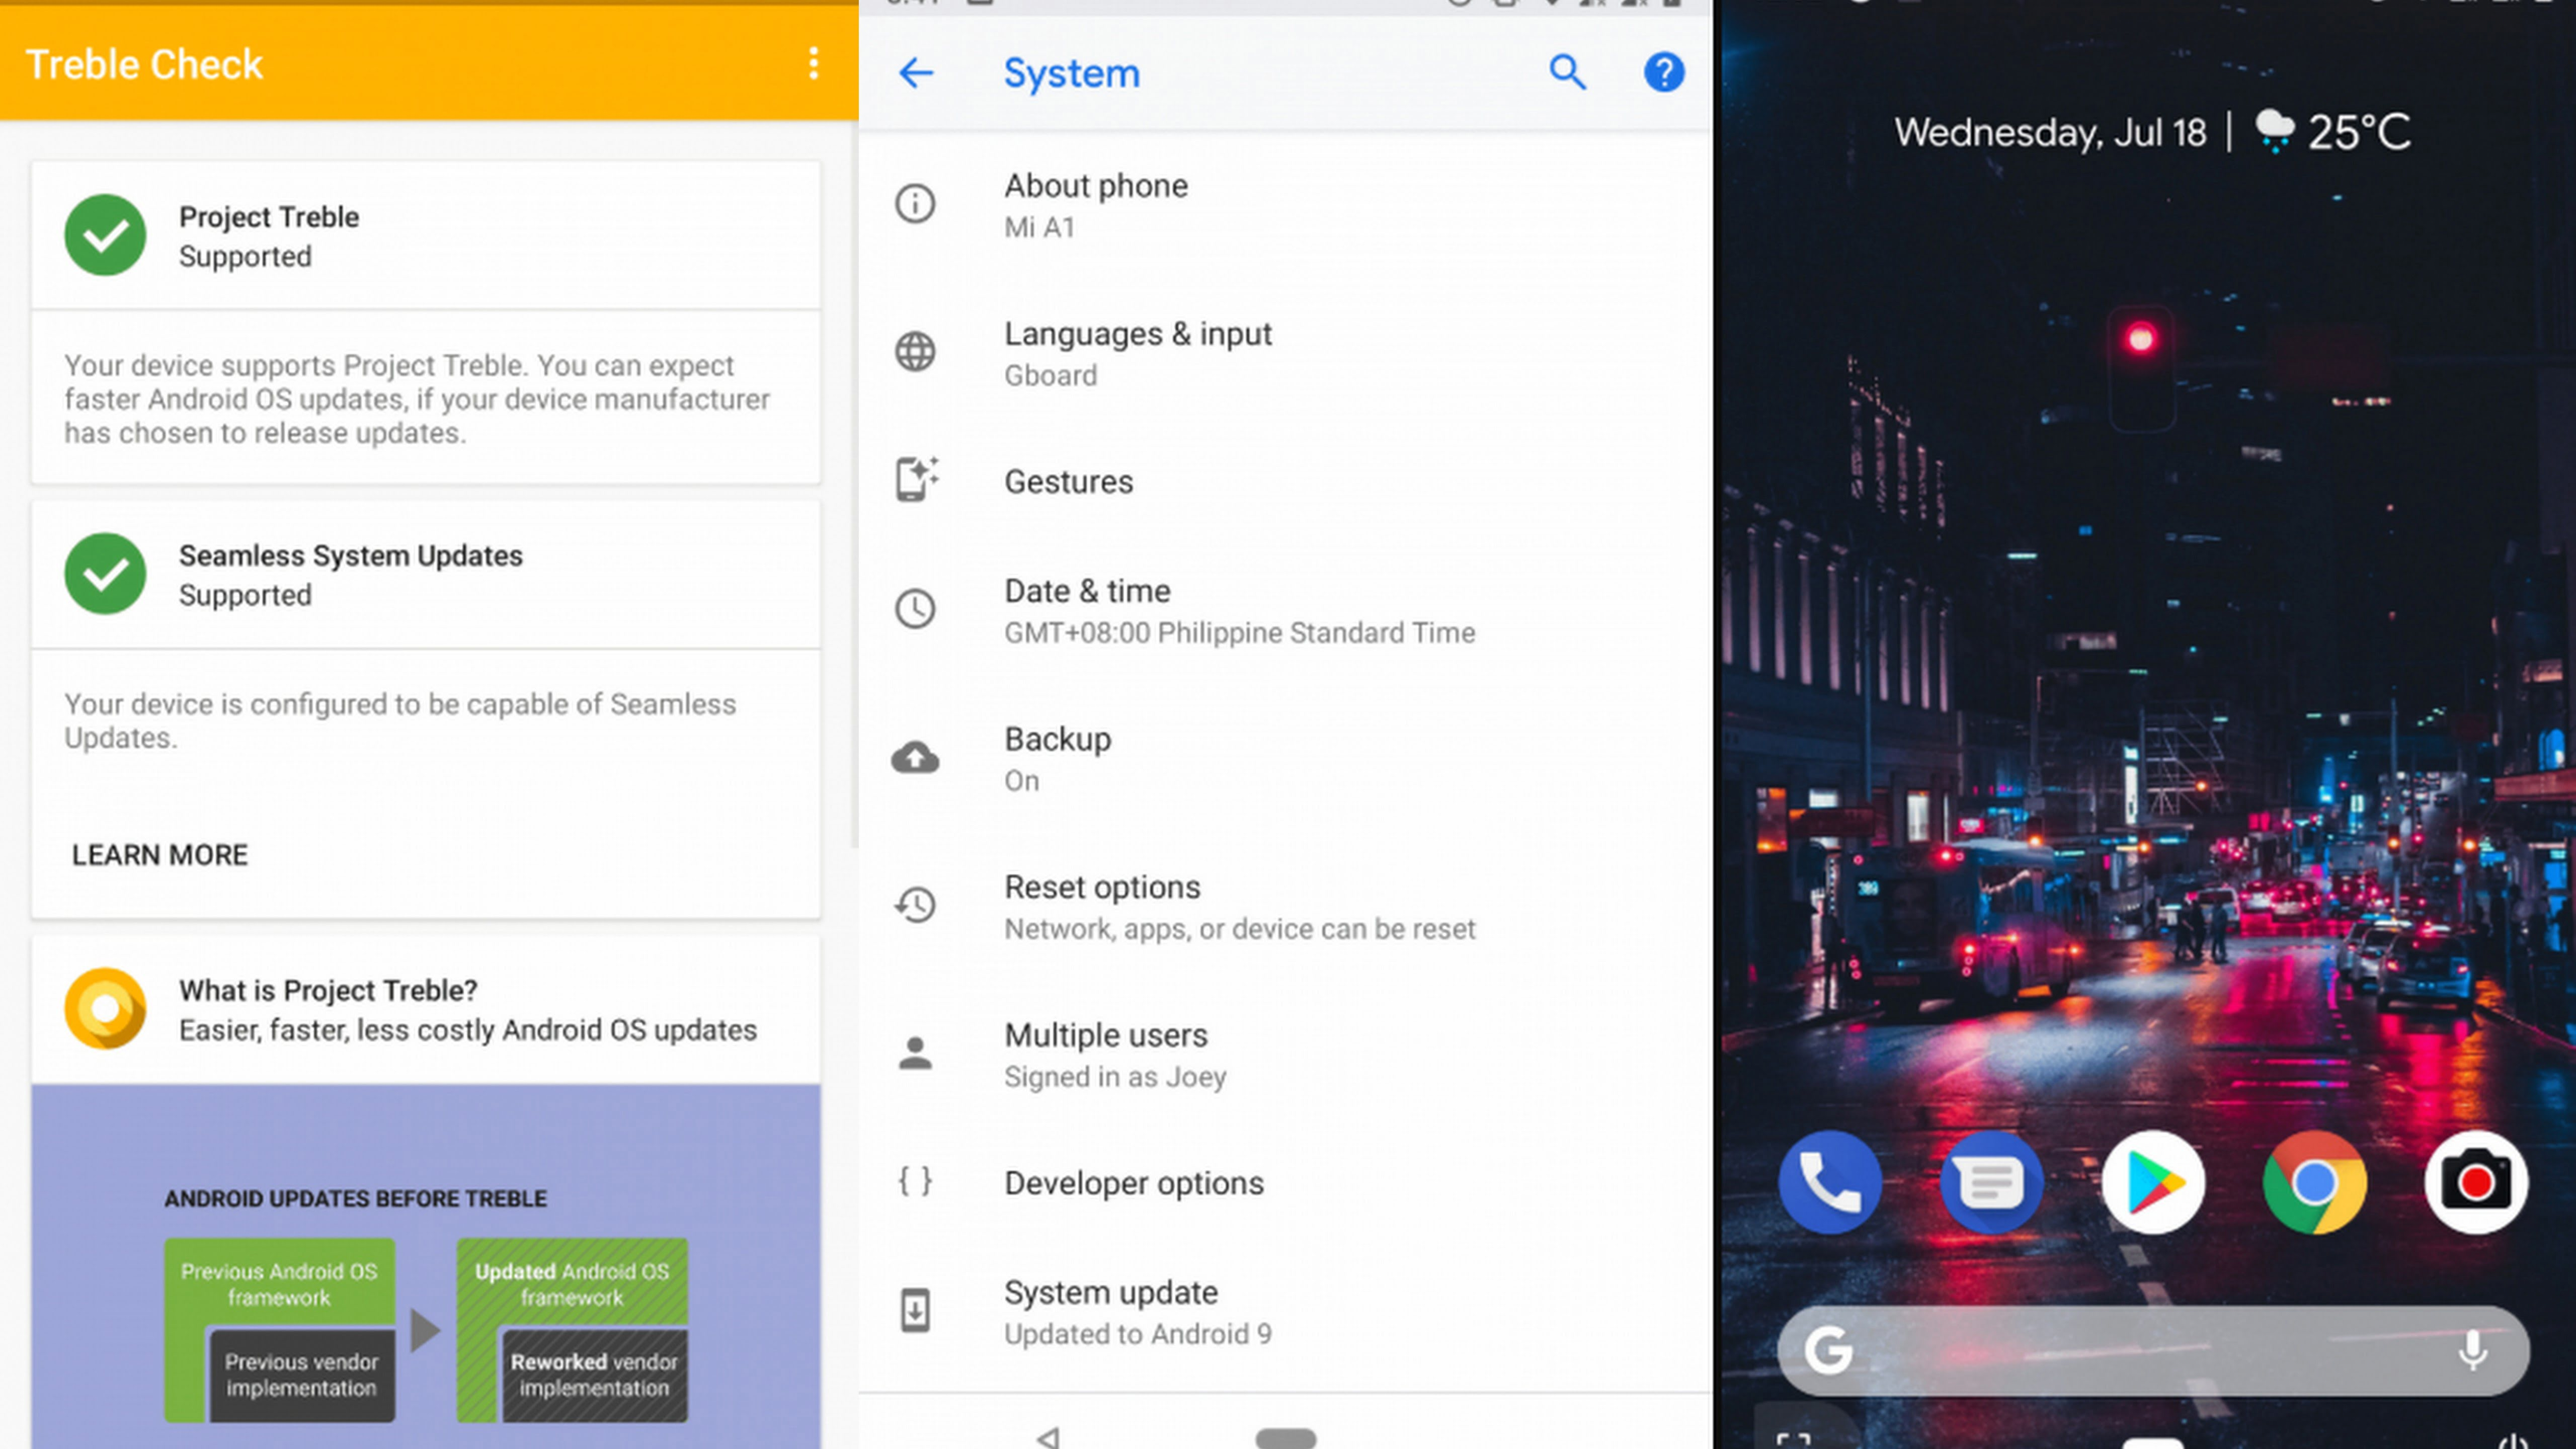 Update Mi A1 to Android 9.0 P